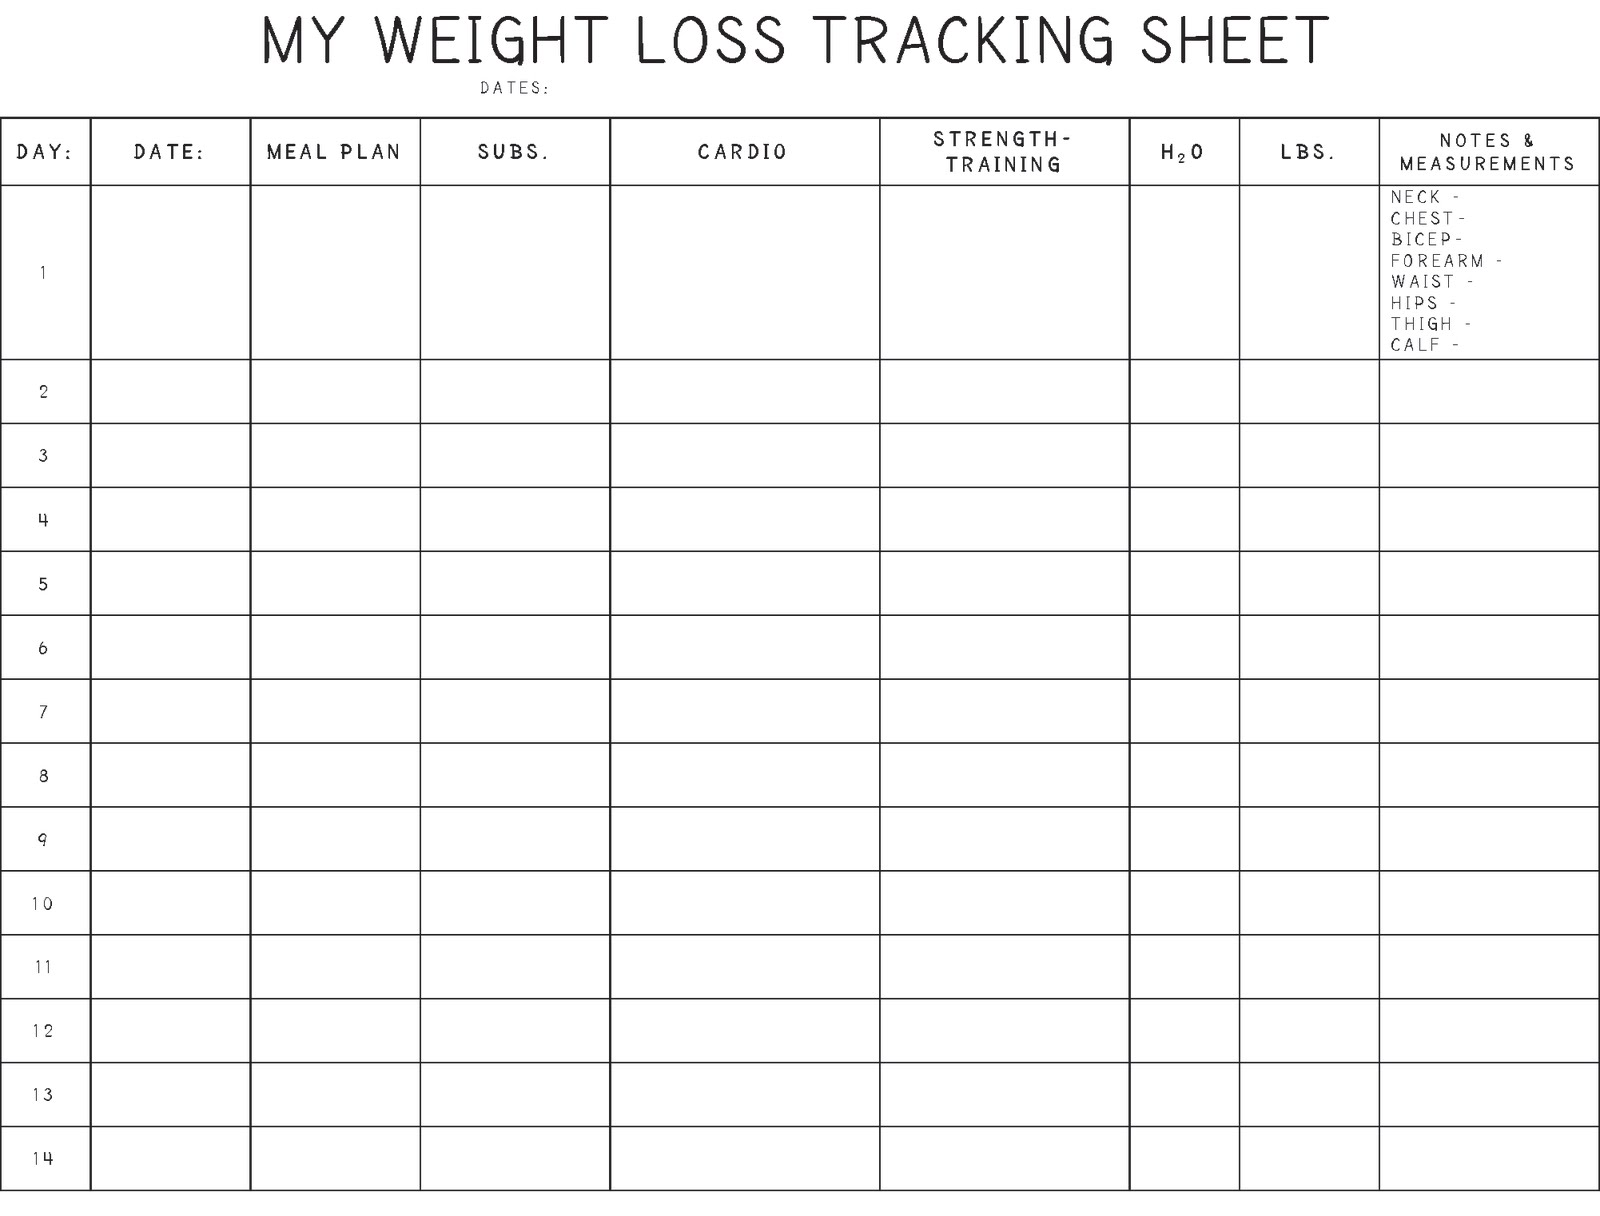 Weight Watchers Food Tracking Sheets http://beehiving.blogspot.com/2011/04/favorite-weight-loss-tips-tip-1-stay-on.html